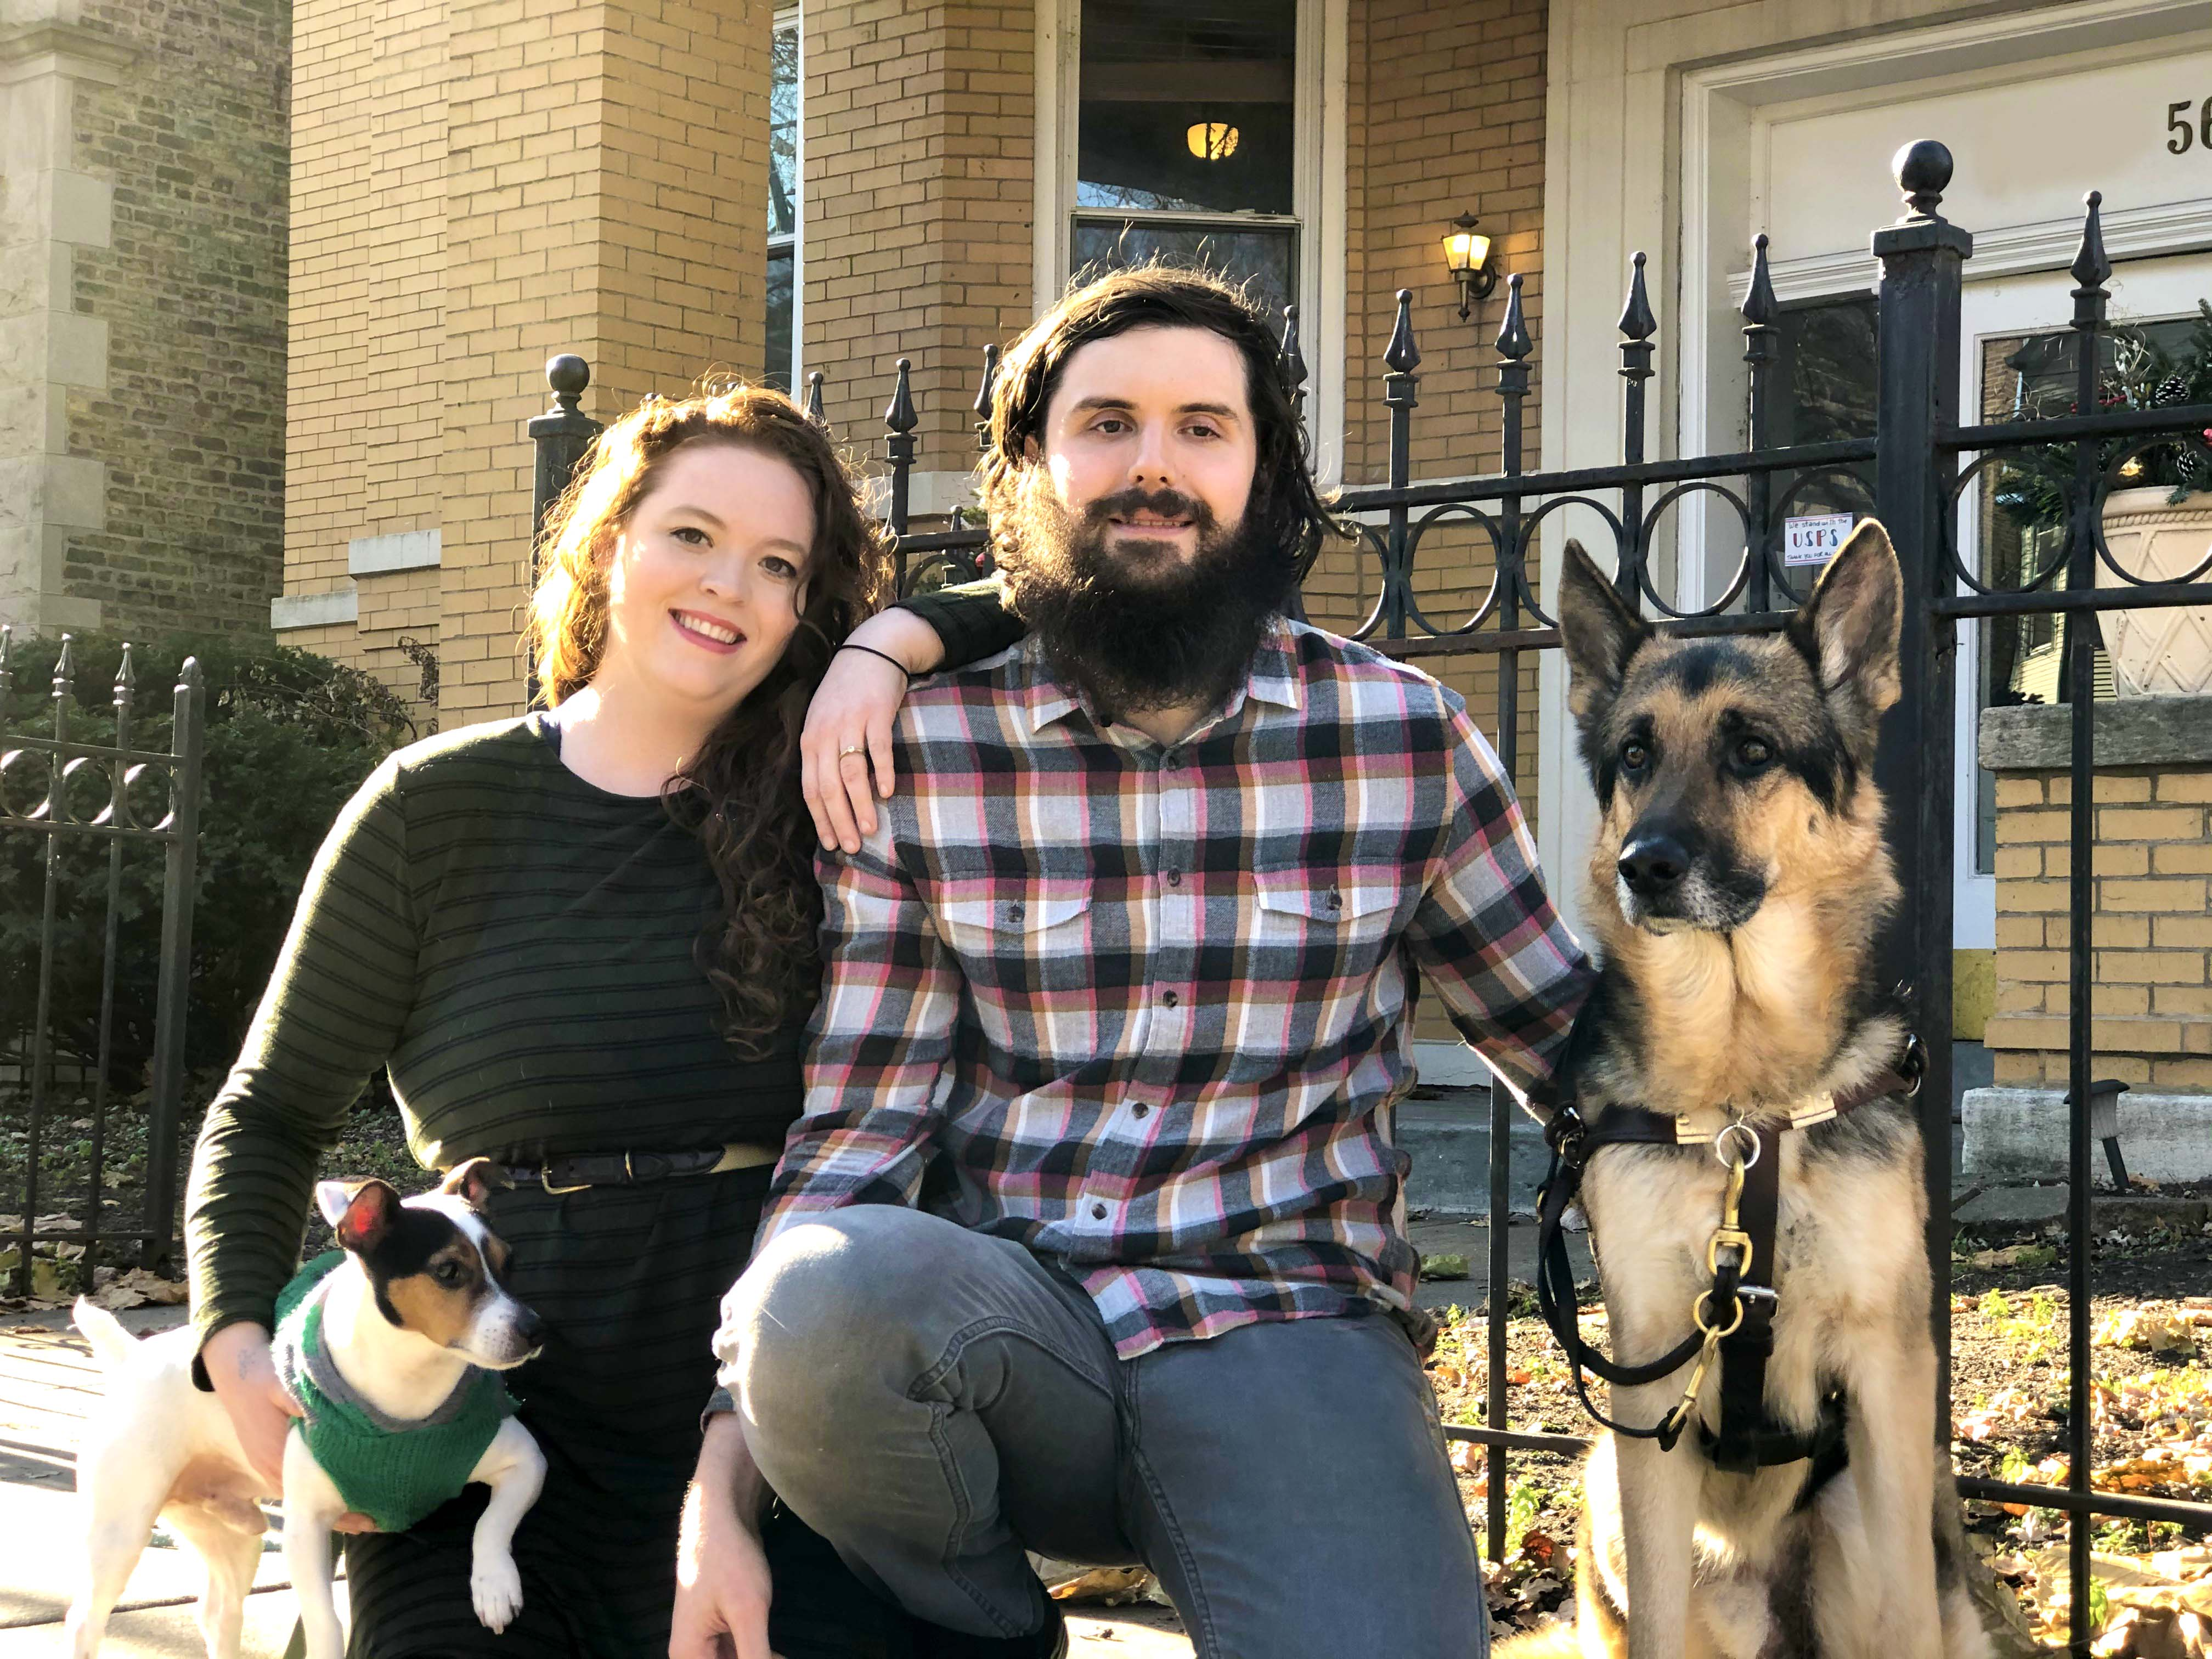 Ben, his wife Martha, and their dogs Louie and Sammie in front of their new home